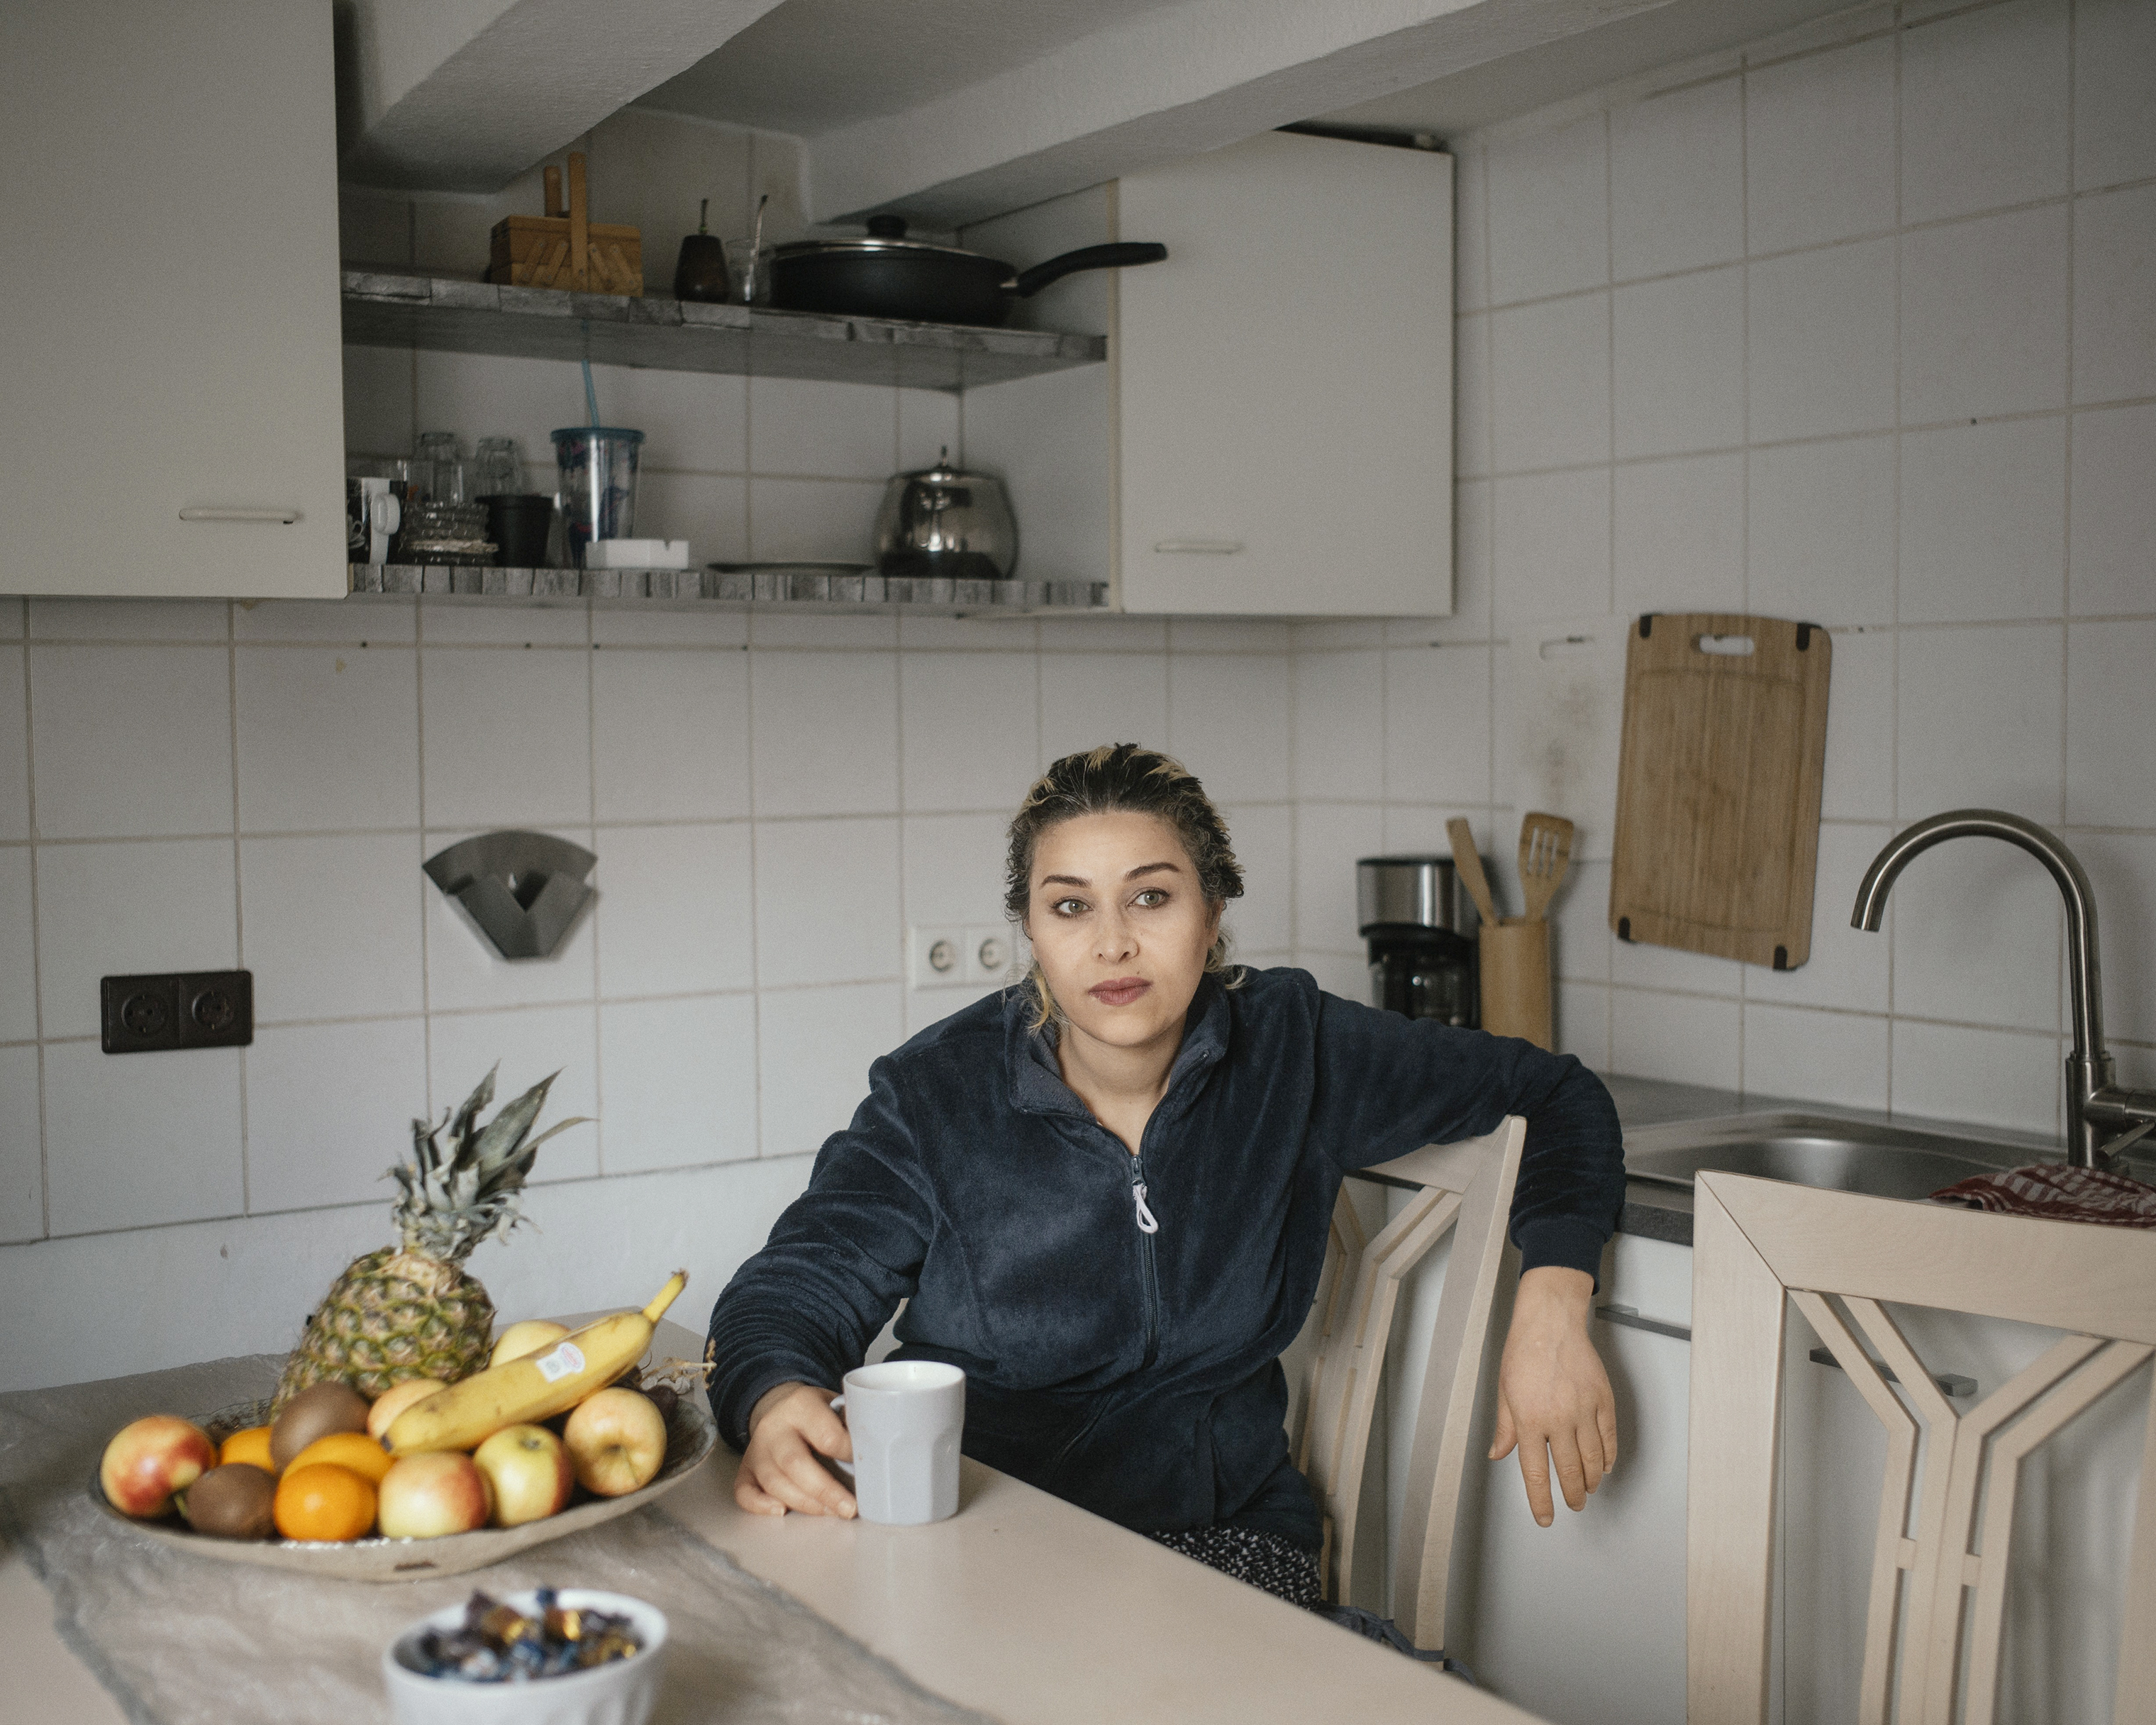 Oula Shaoud, a 35-year-old single mother of four children, in her kitchen in Anröchte, Germany.